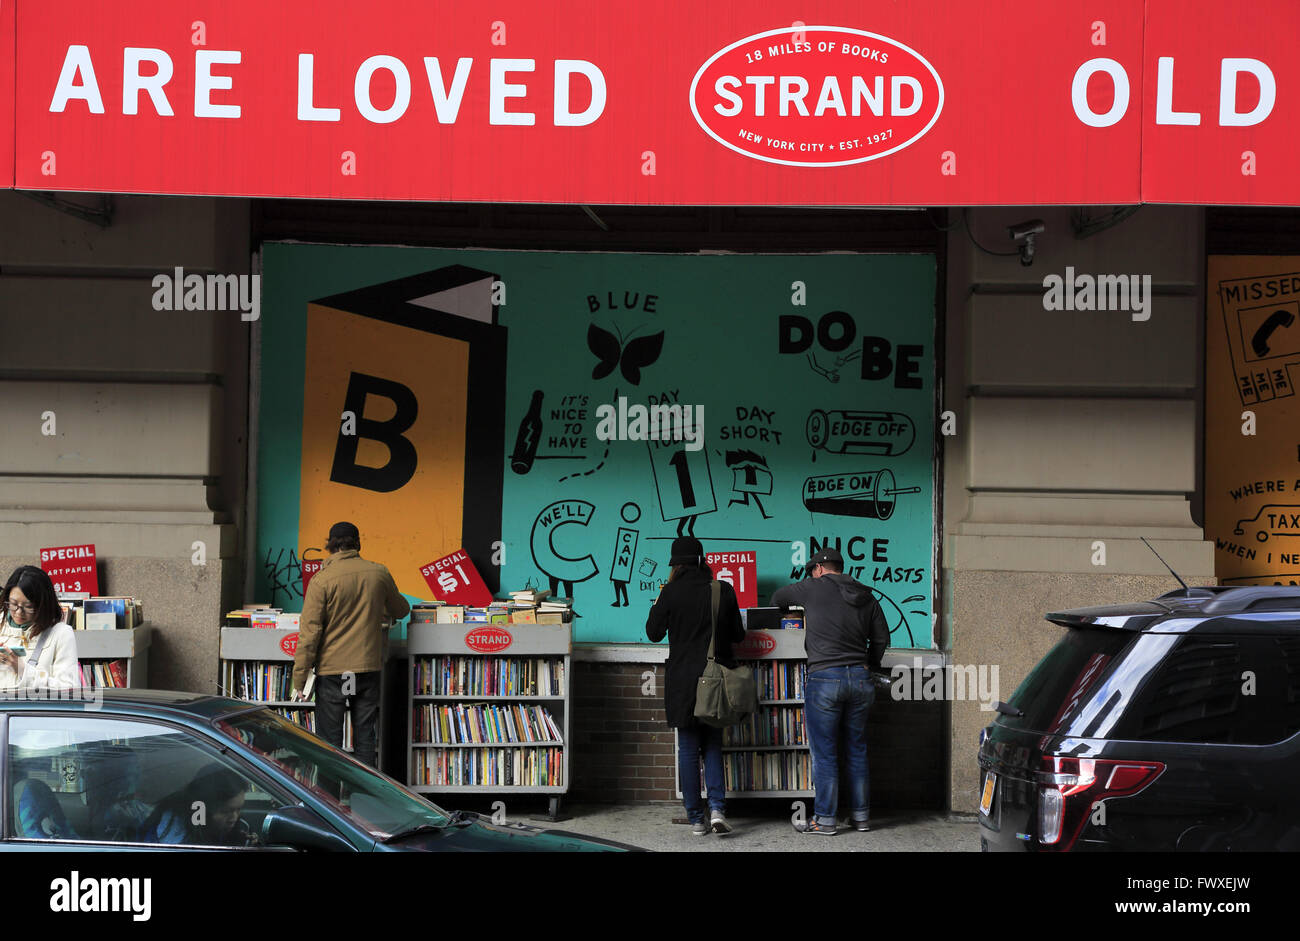 books for sale on sidewalk outside of Strand Bookstore in Greenwich Village, Manhattan, New York City, USA - Stock Image